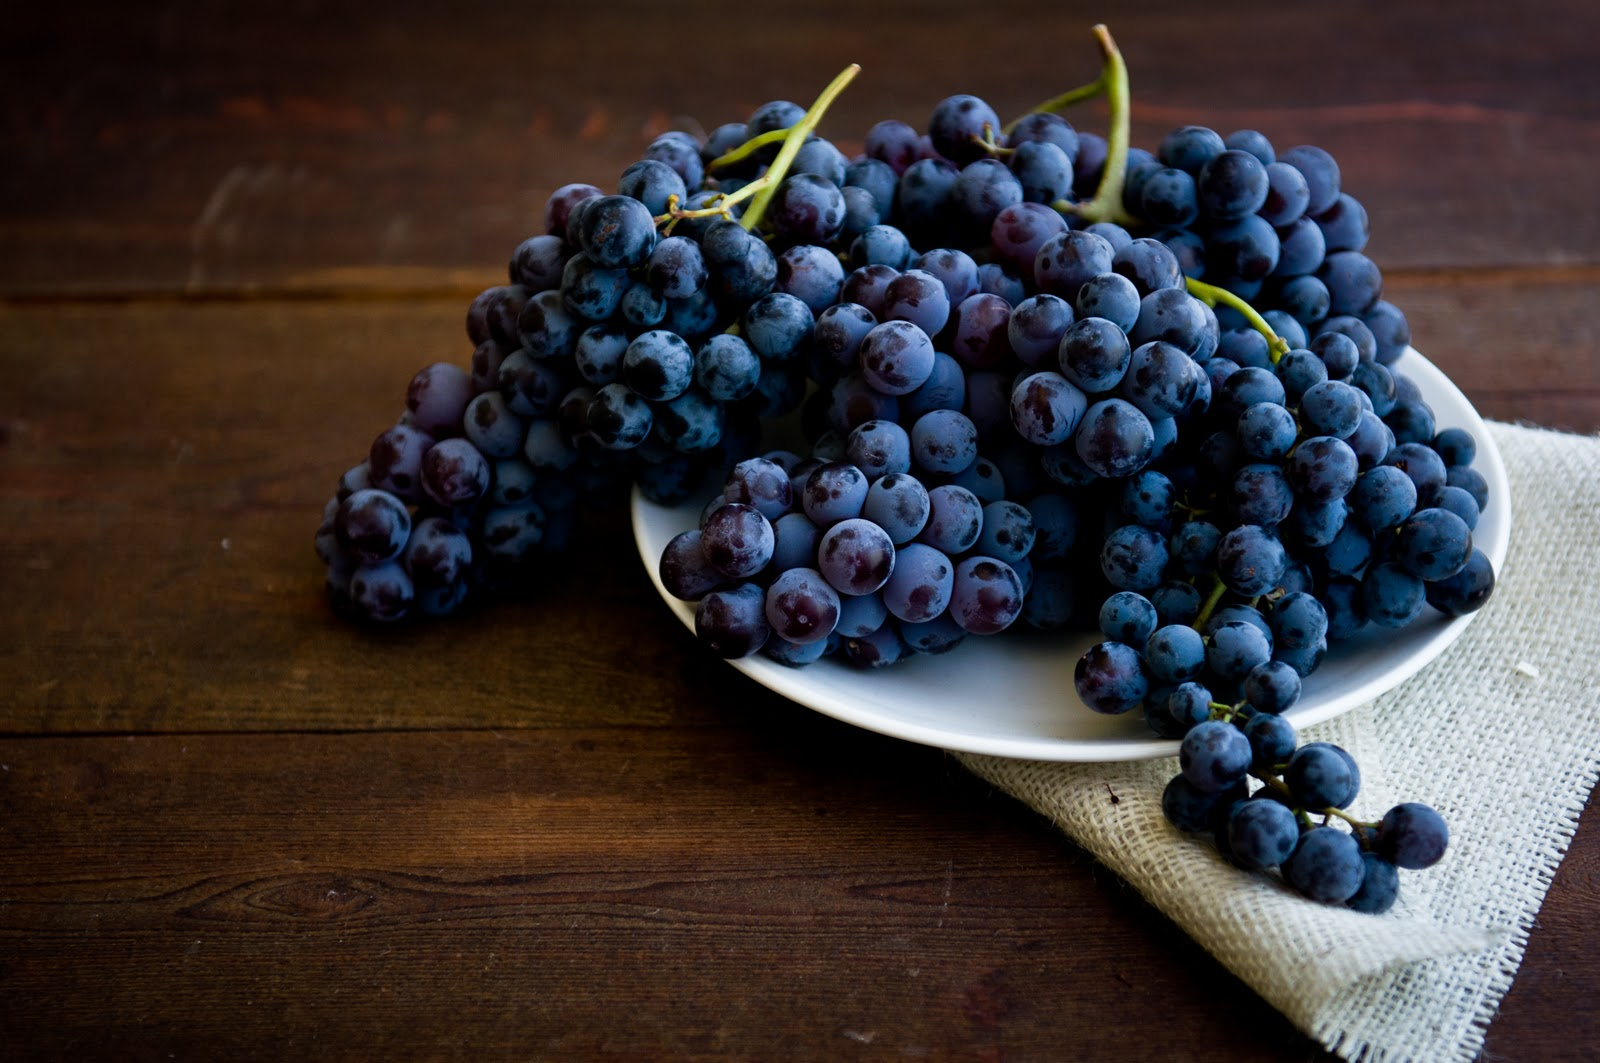 Desserts for Breakfast: Concord Grape Sorbet